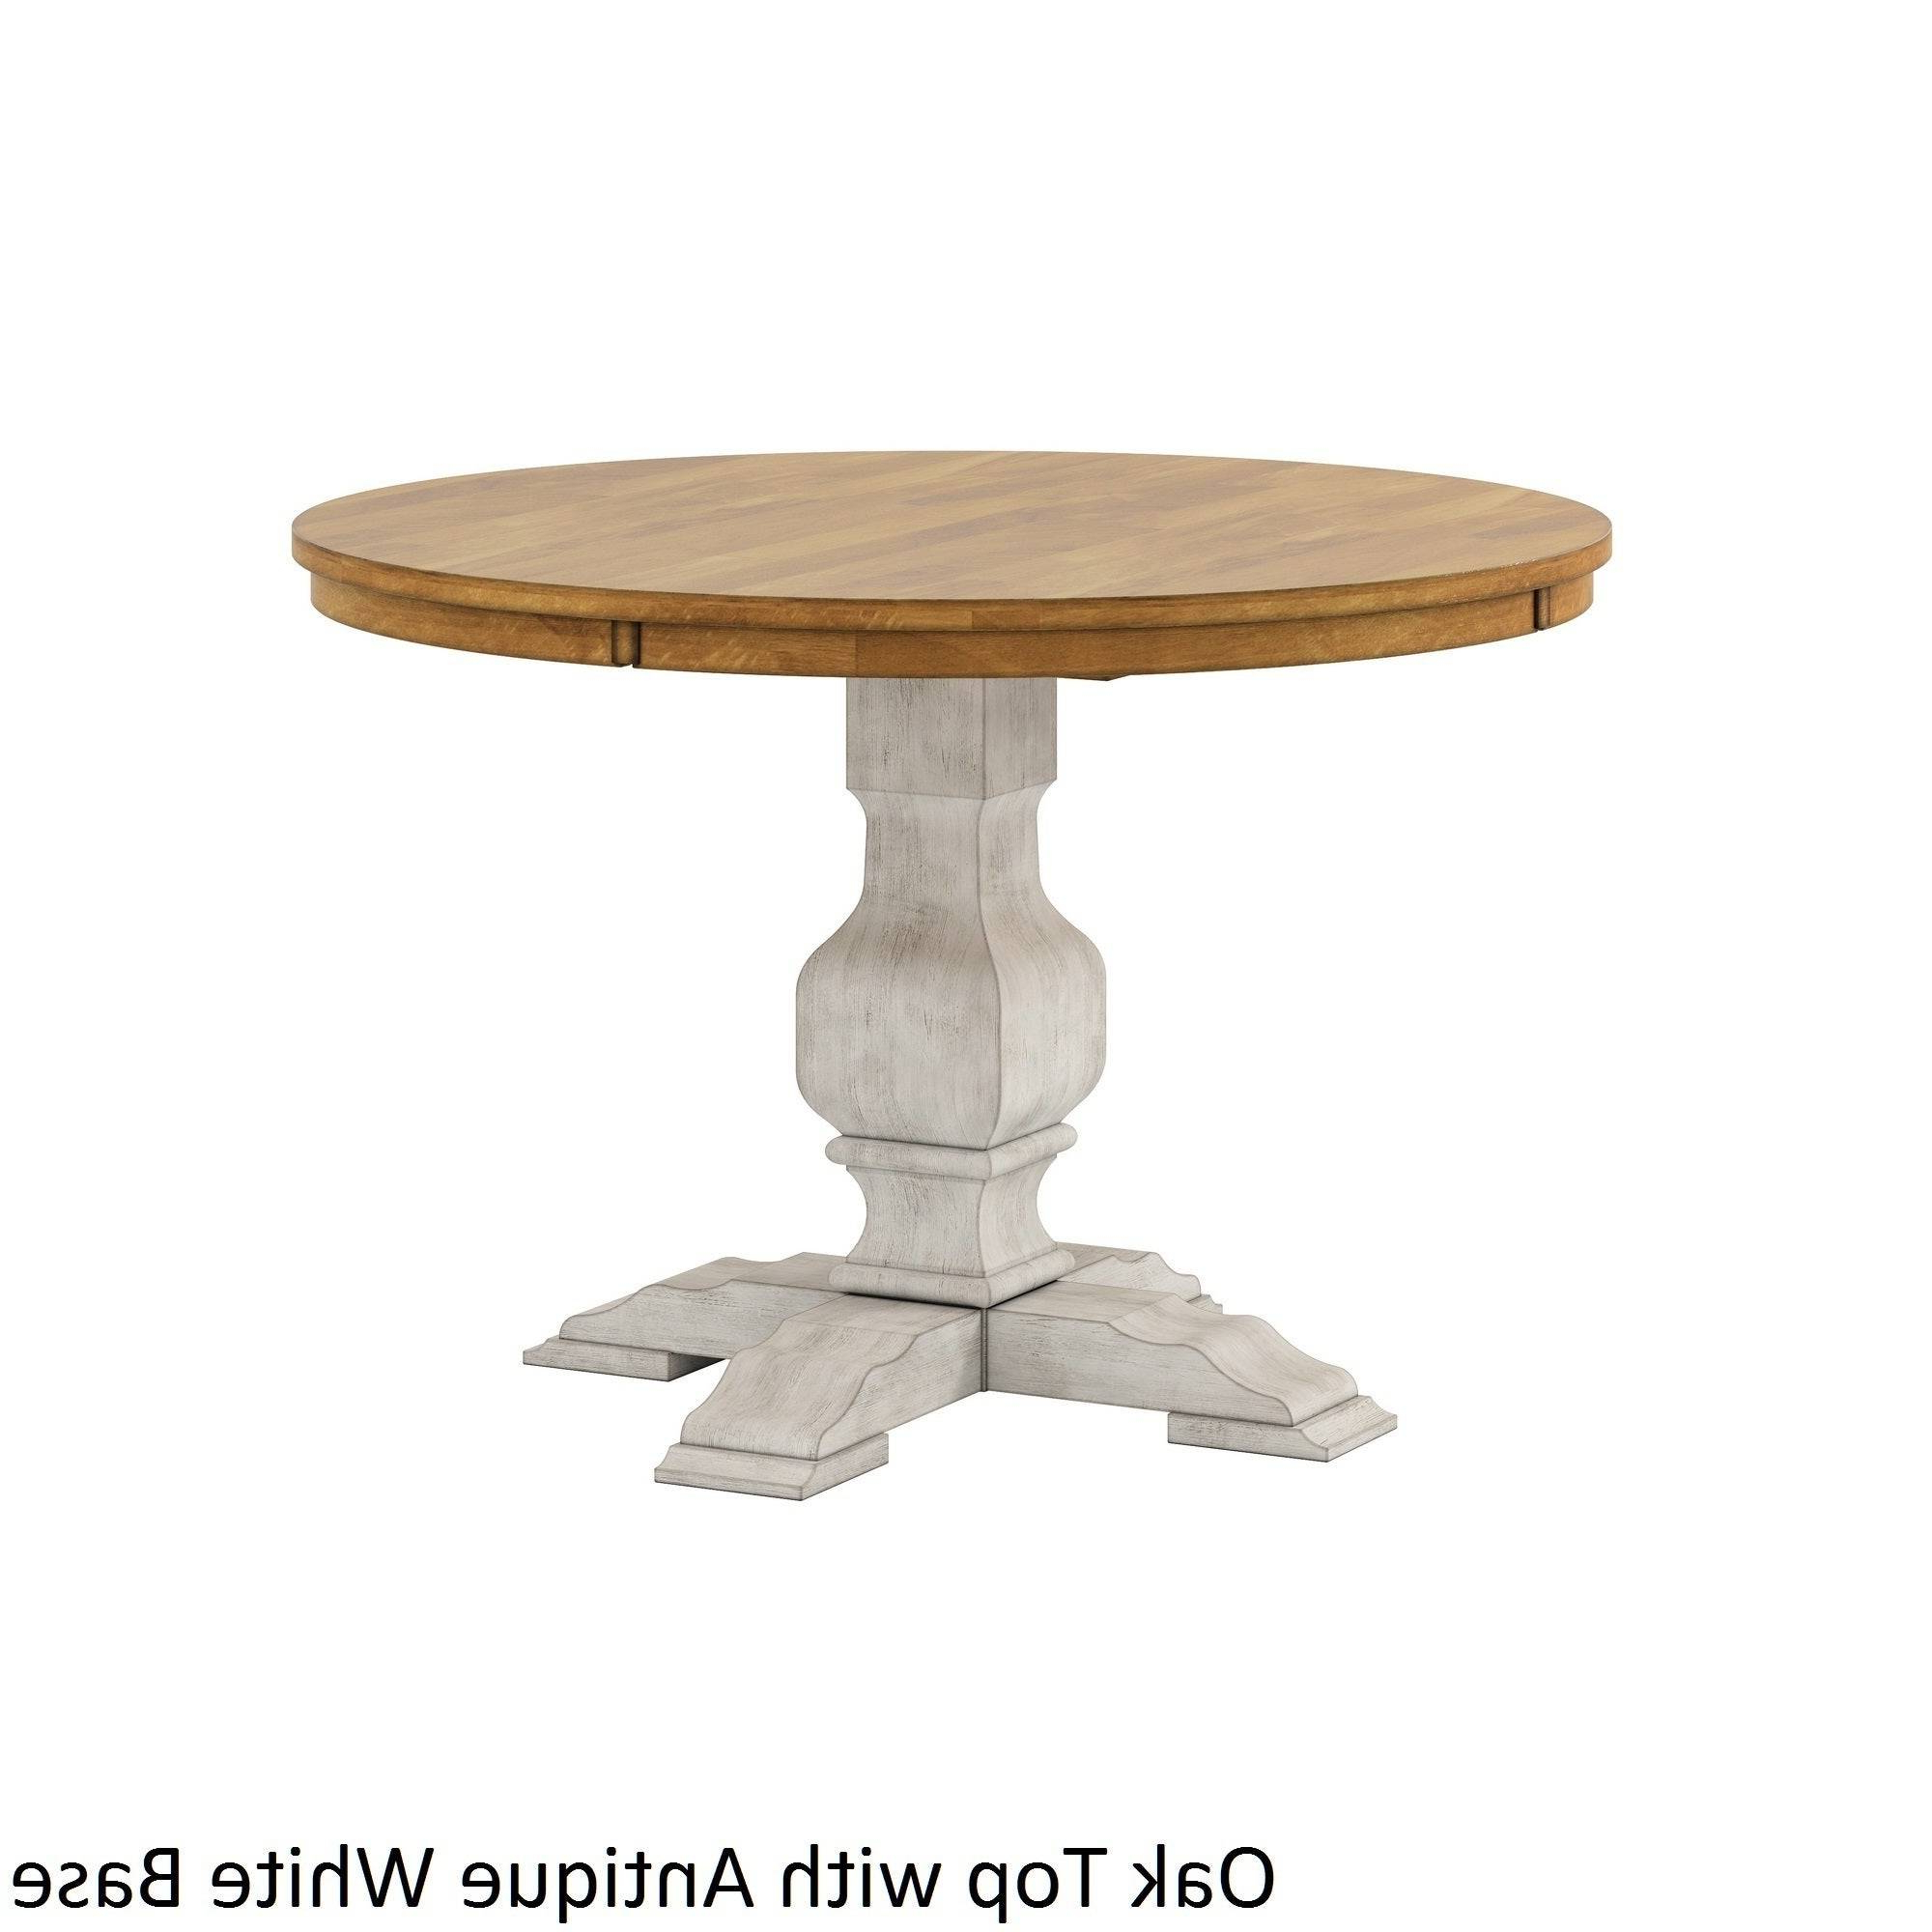 Likable Round Dining Table Wood Top Splendid Furniture Room With Fashionable Solid Wood Circular Dining Tables White (View 19 of 25)